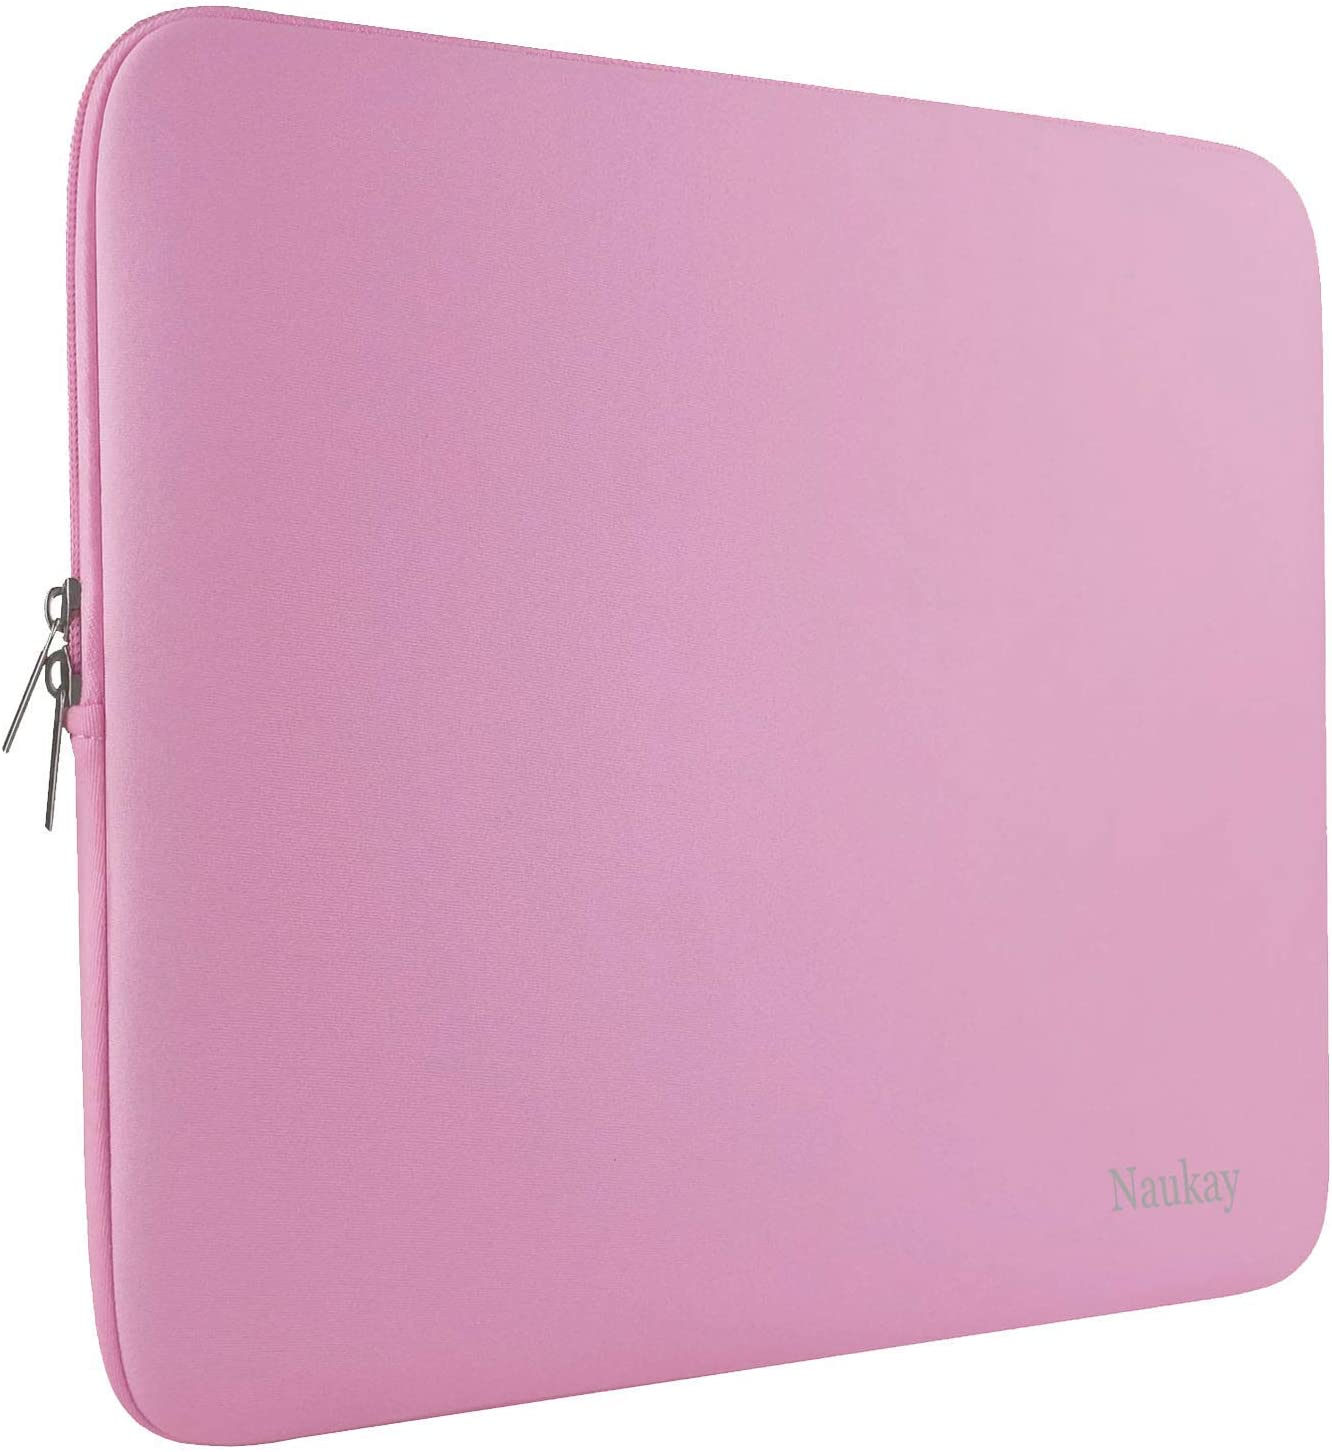 Naukay 15.6 Inch Laptop Sleeve,Resistant Neoprene Laptop Sleeve/Notebook Computer Pocket Case/Tablet Briefcase Carrying Bag - (Pink)